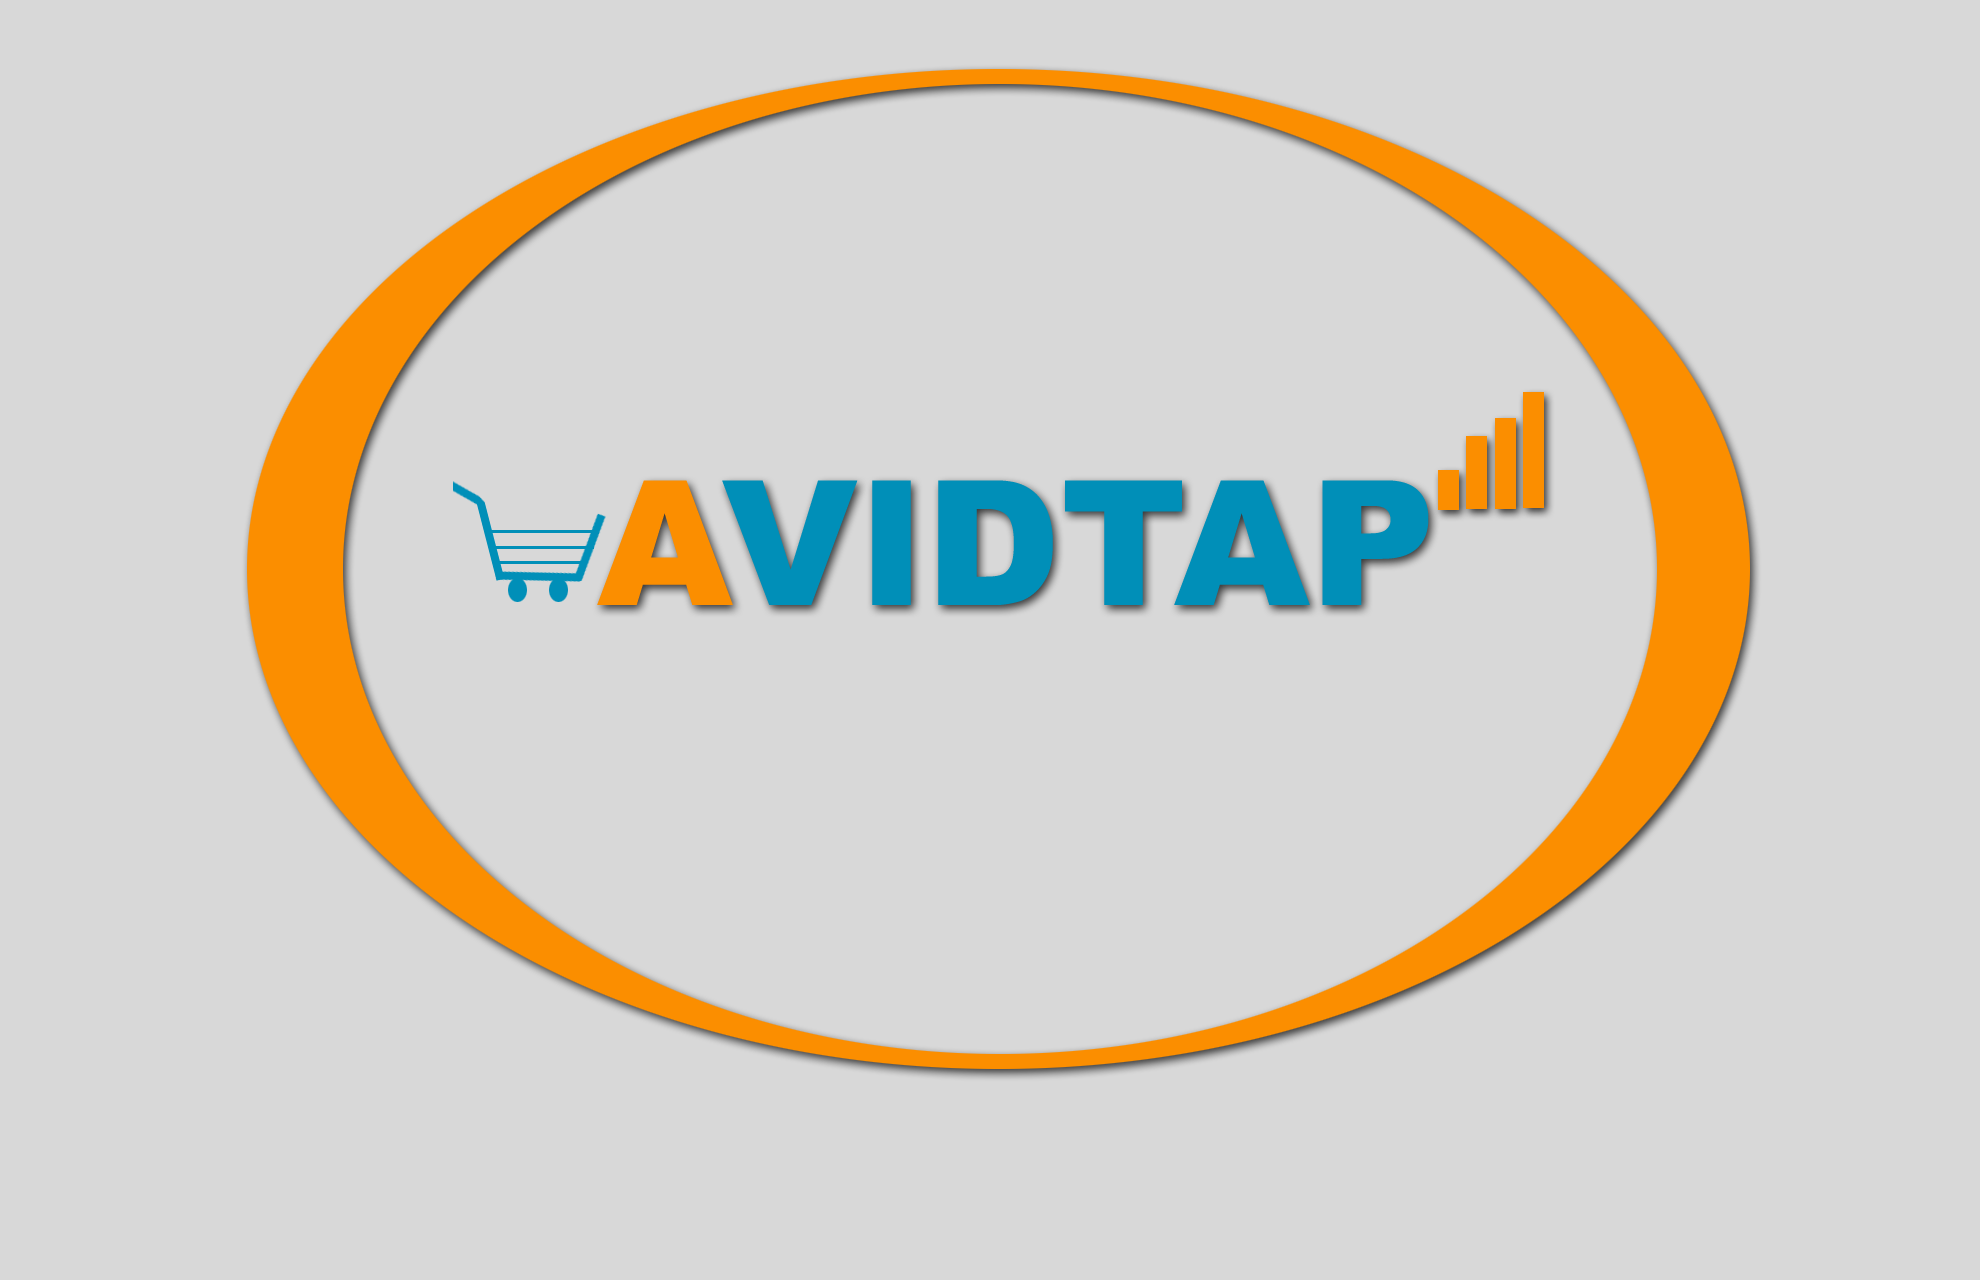 Logo Design by Talvinder Singh - Entry No. 101 in the Logo Design Contest Imaginative Logo Design for AvidTap.